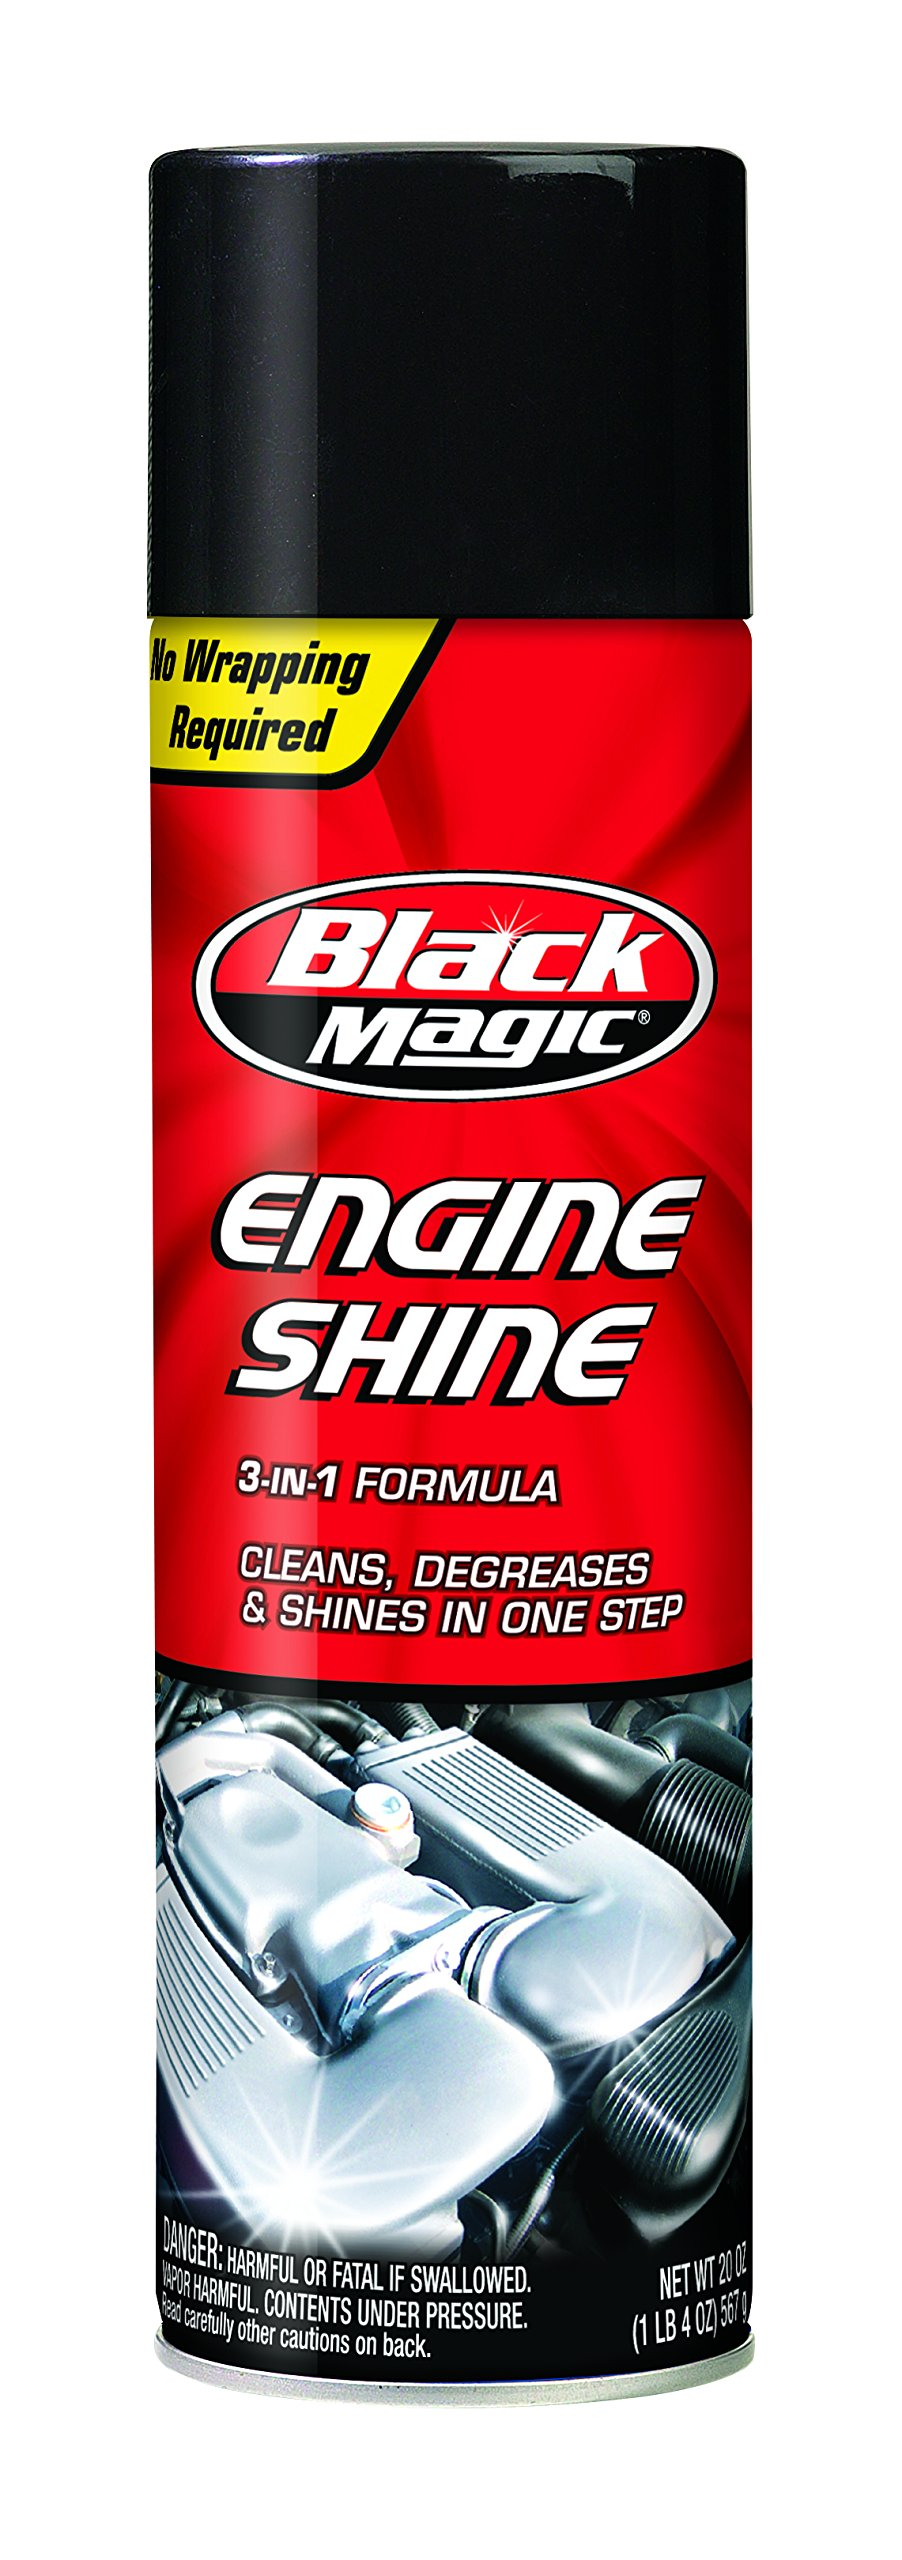 Black Magic BM22018 2-in-1 Engine Shine, 20 oz. by Black Magic